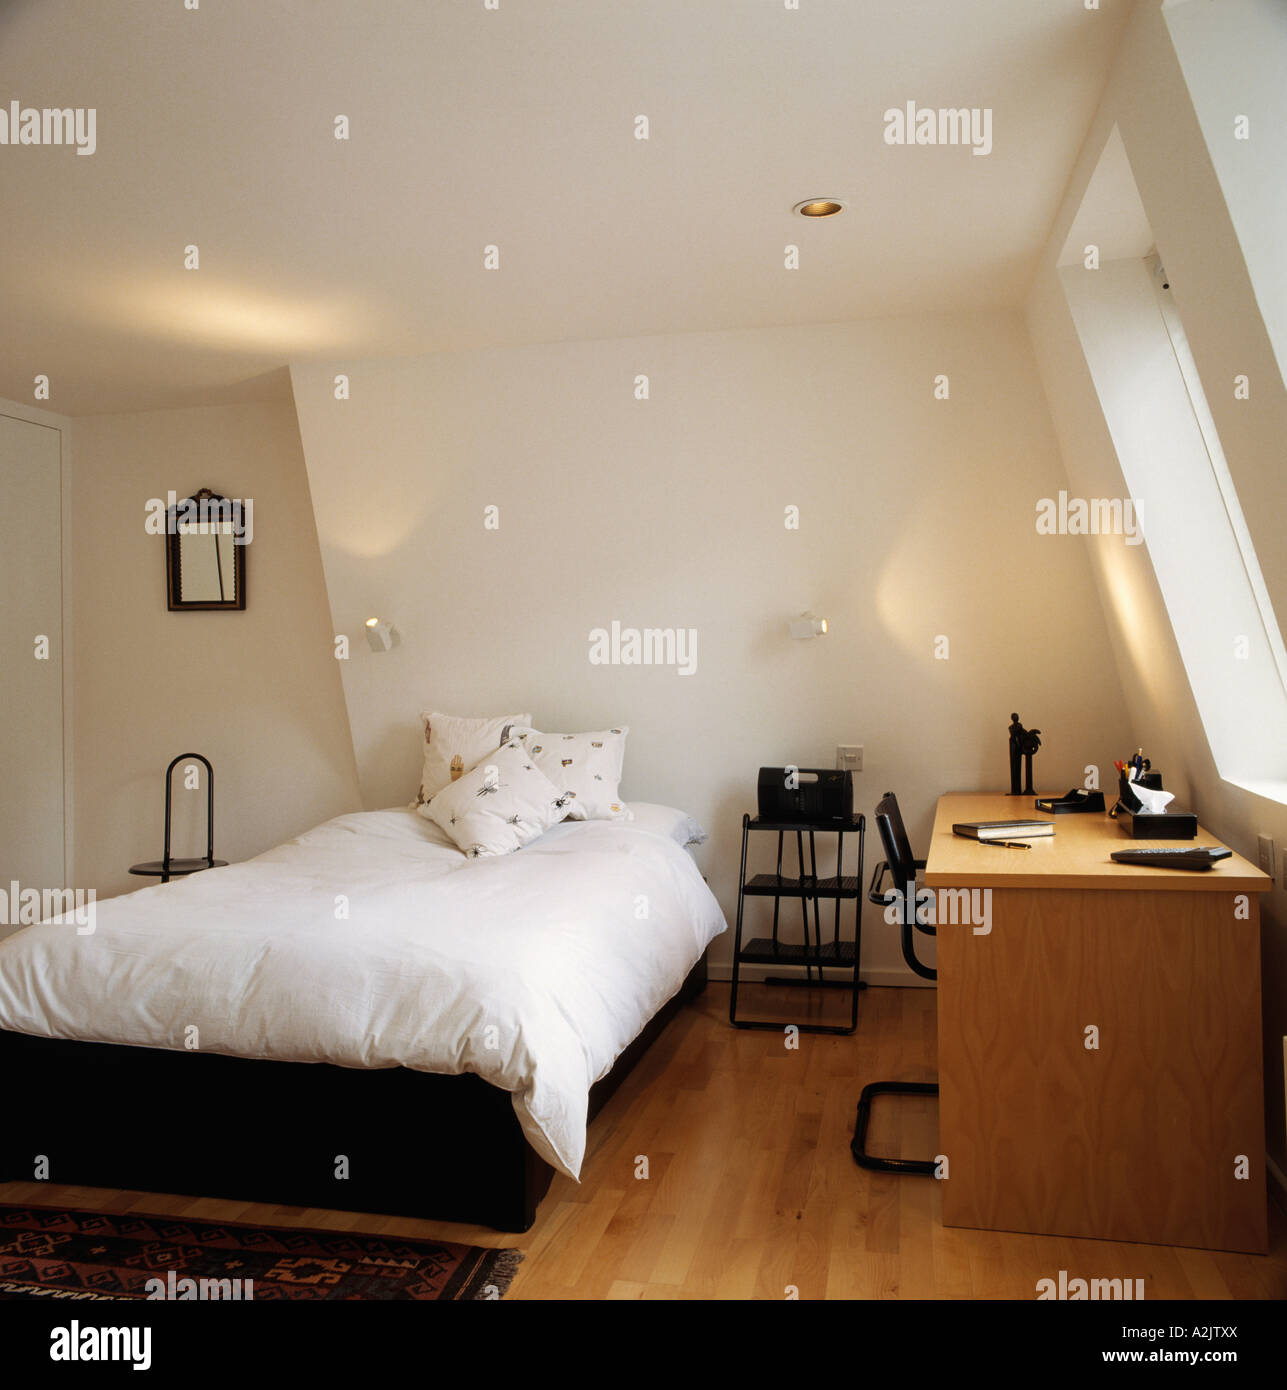 Modern White Attic Bedroom With Desk And Wooden Floor Stock Photo Alamy